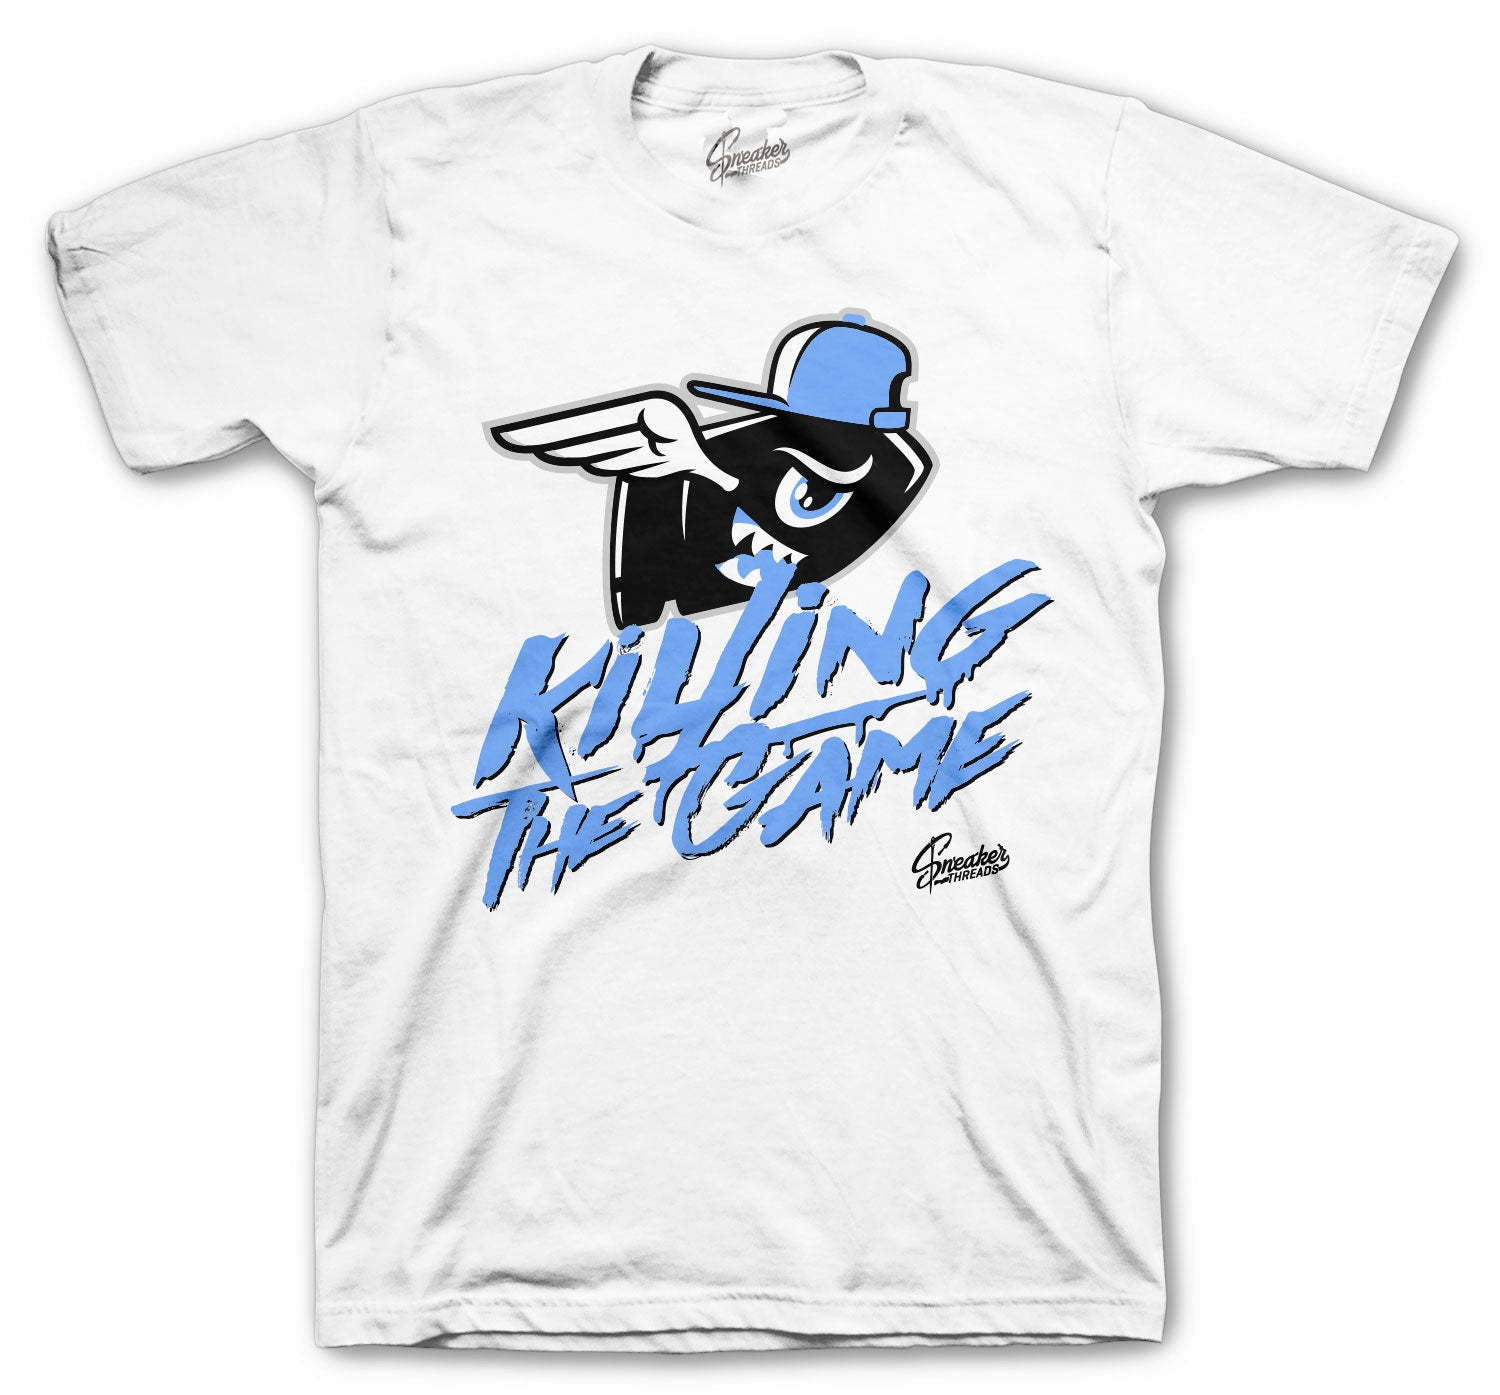 Jordan 1 Hyper Royal Shirt - Killing The Game - White